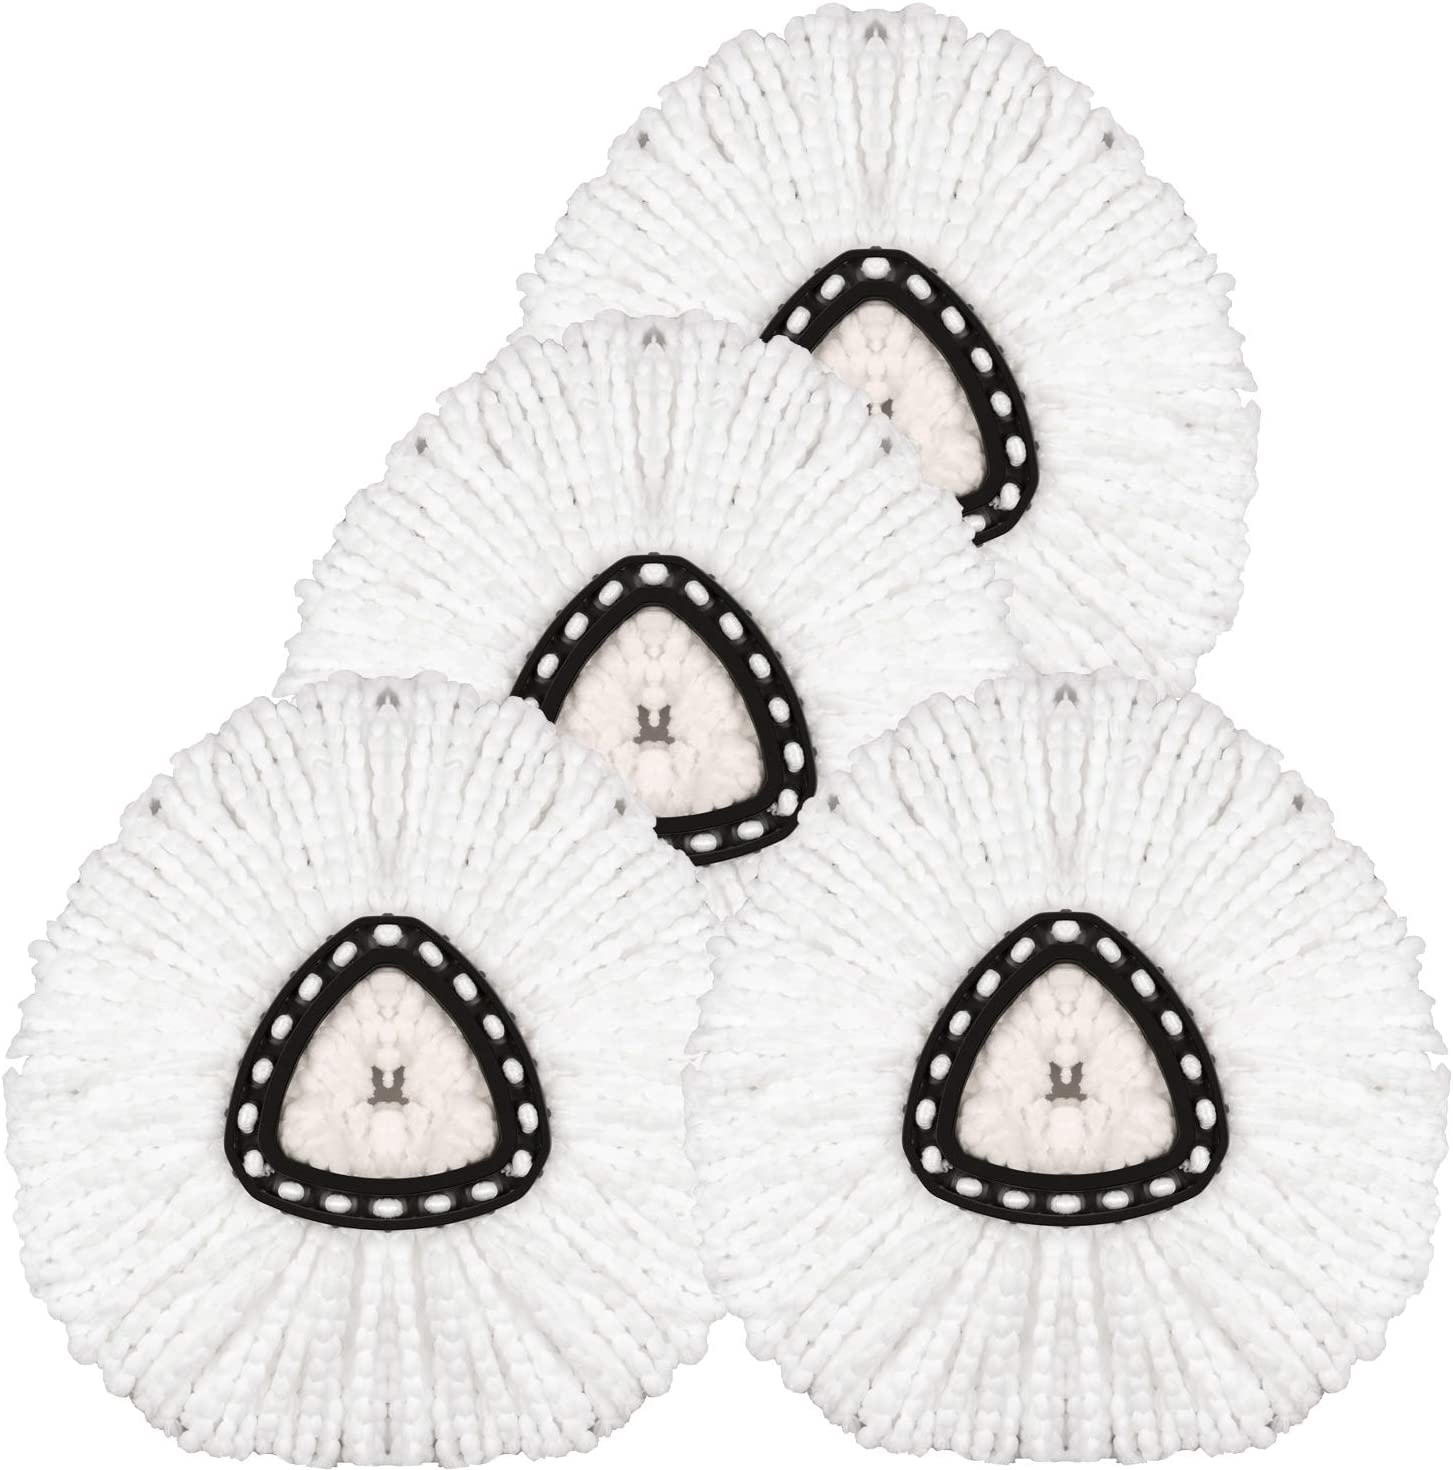 4 Pack Spin Mop Replacement Spi Refills Microfiber Tulsa discount Mall Head